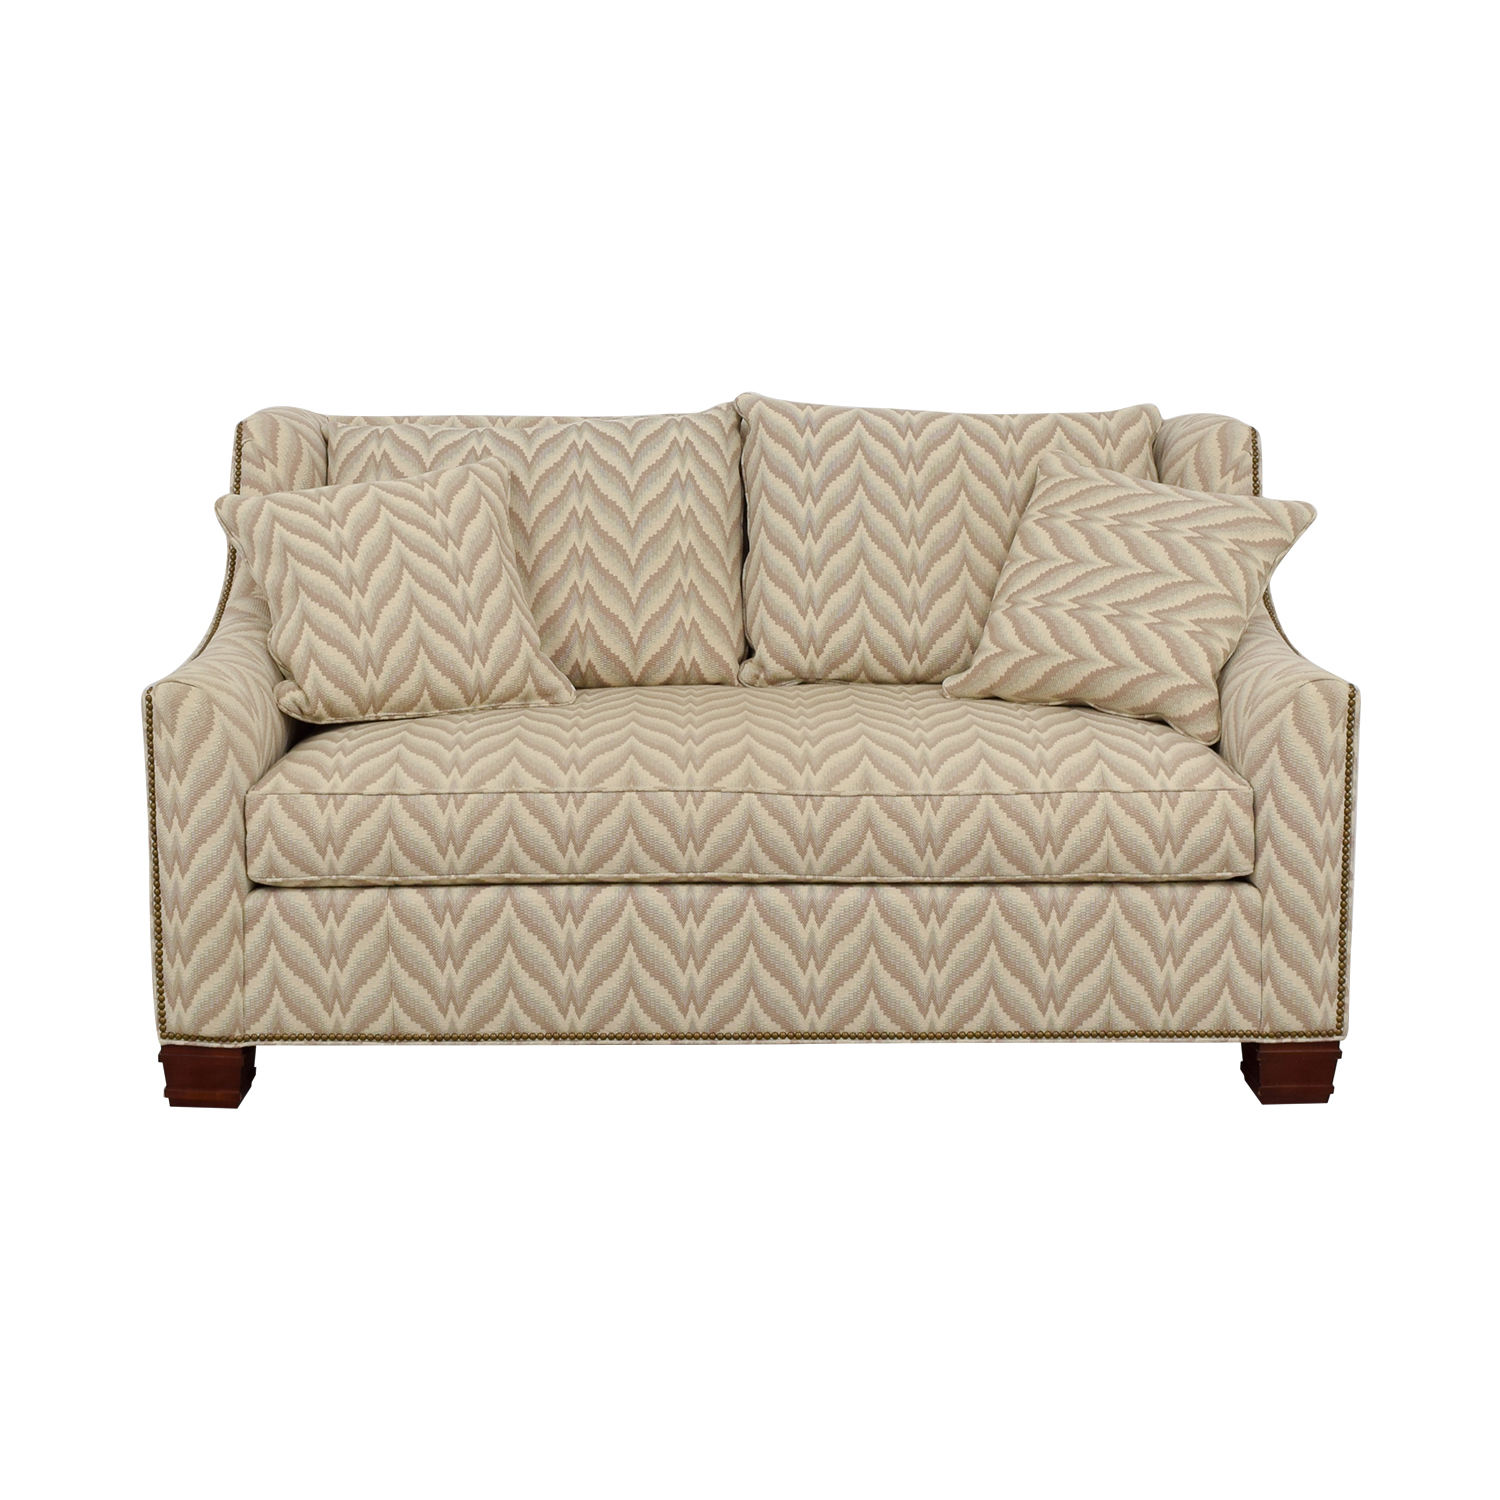 shop The Hickory Chair Furniture Co. Chevron Nailhead Loveseat The Hickory Chair Furniture Co. Loveseats